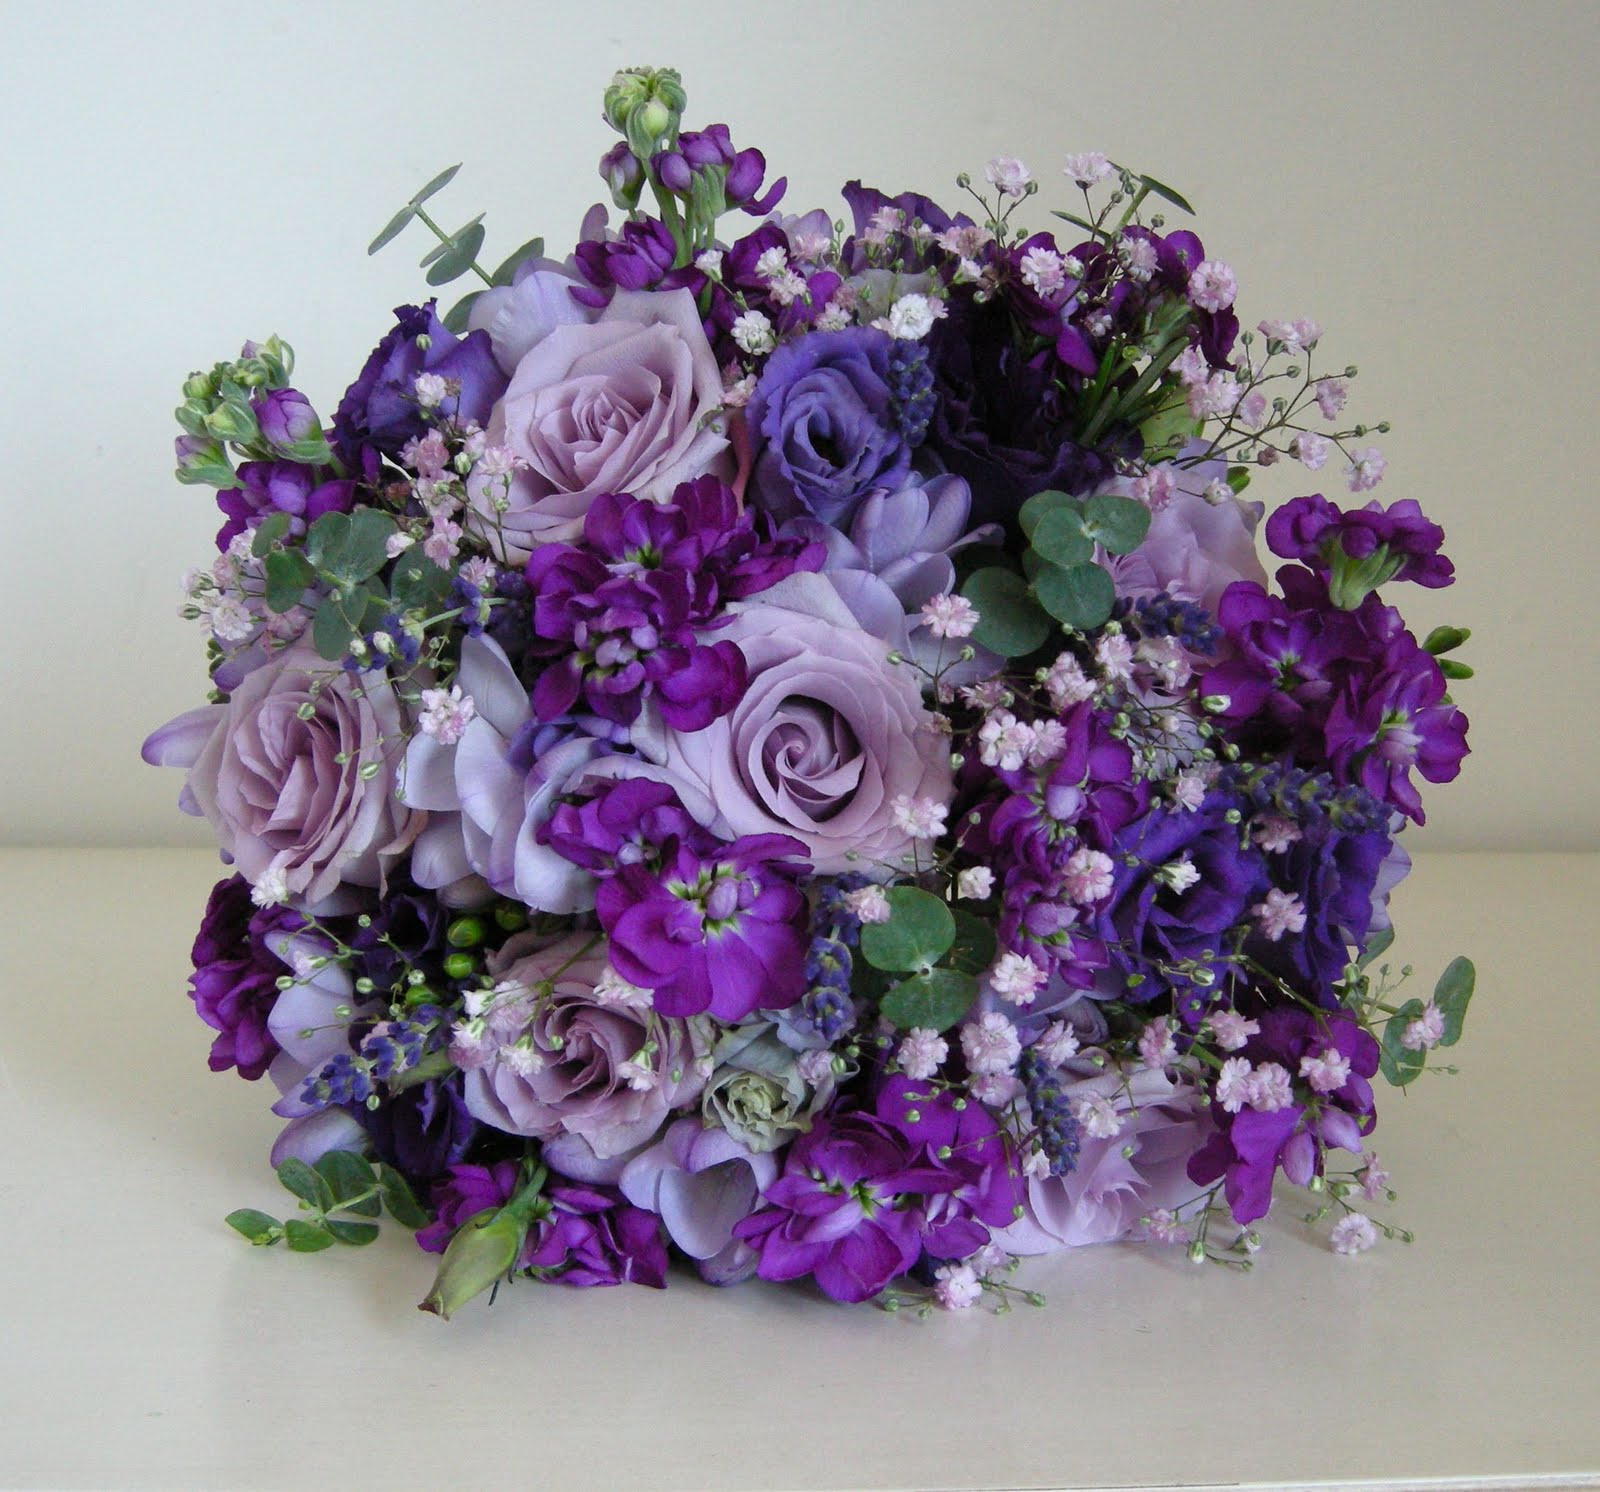 Wedding flowers blog becky 39 s country style wedding for Bouquet of flowers for weddings